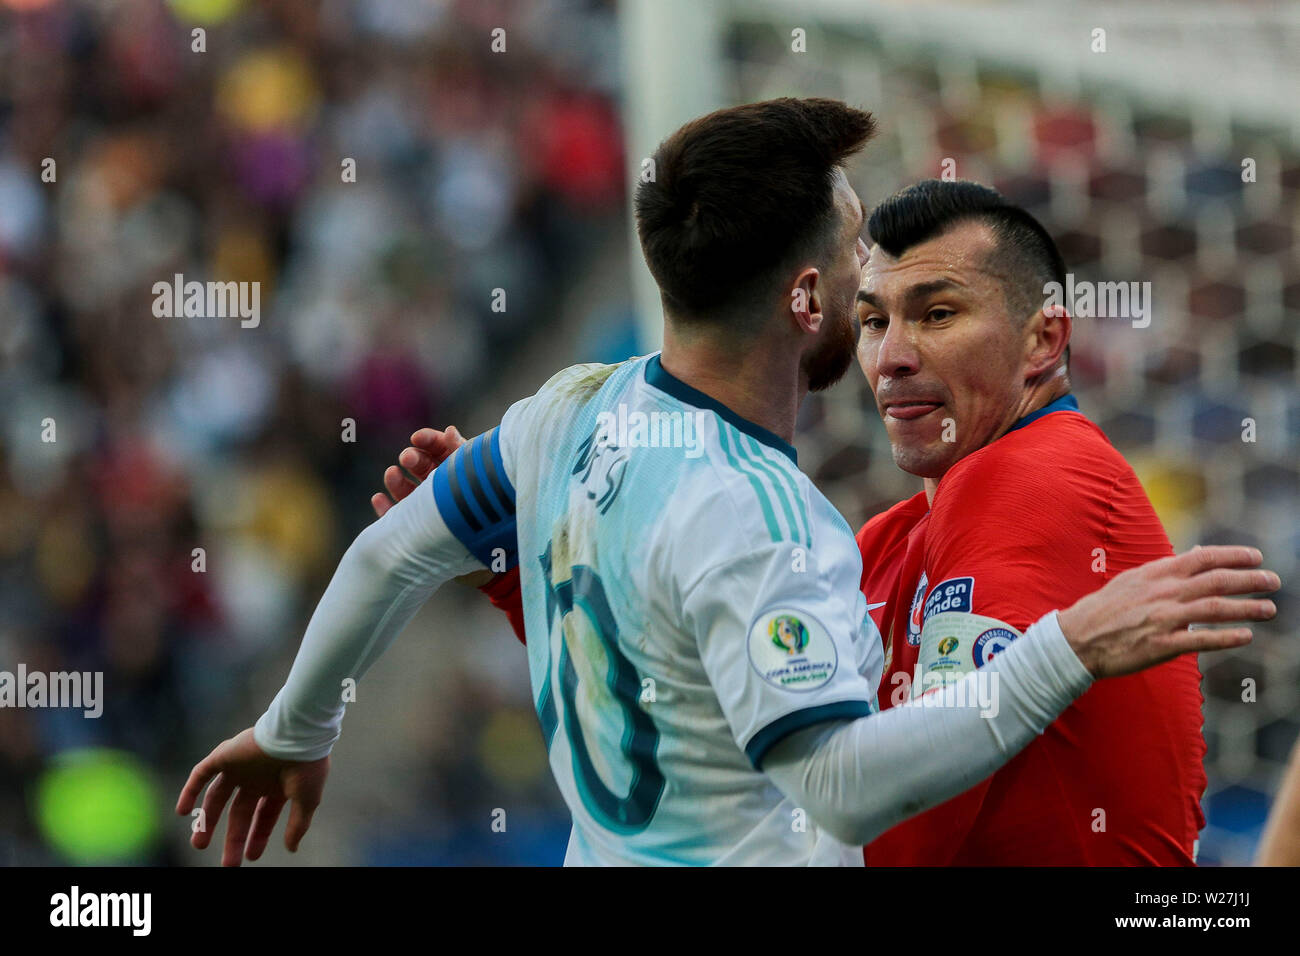 6th July 2019, Arena Corinthians Stadium, Sao Paulo, Brazil; Copa America international football, 3rd-4th playoff final, Argentina versus Chile; Lionel Messi of Argentina and Gary Medel of Chile get into a head butting argument which saw them both sent off with red cards in the 37th minute - Stock Image